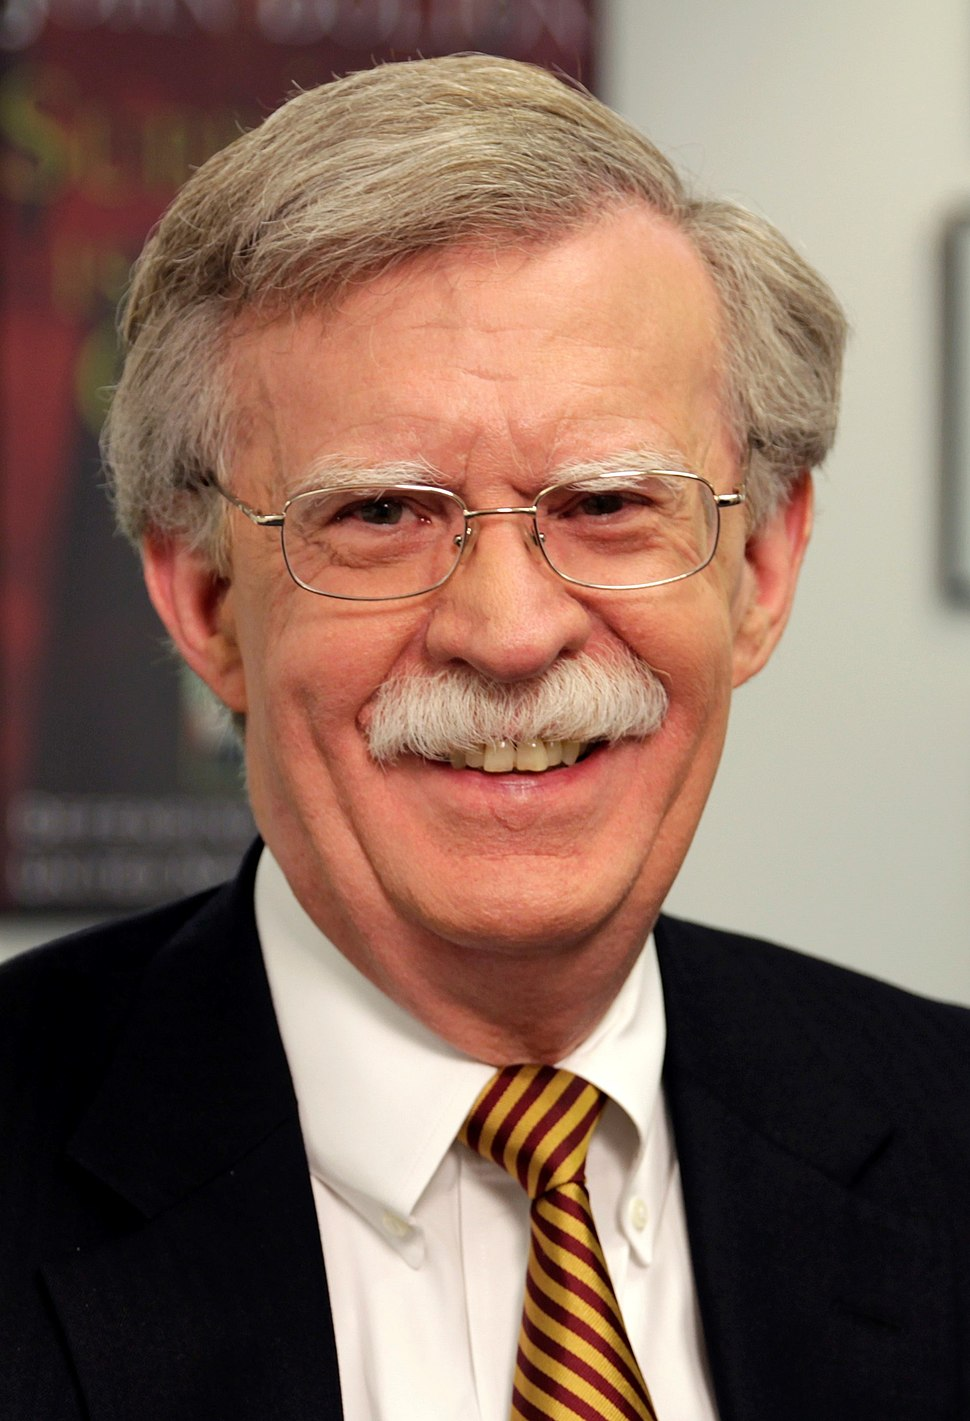 John R. Bolton official photo (cropped)